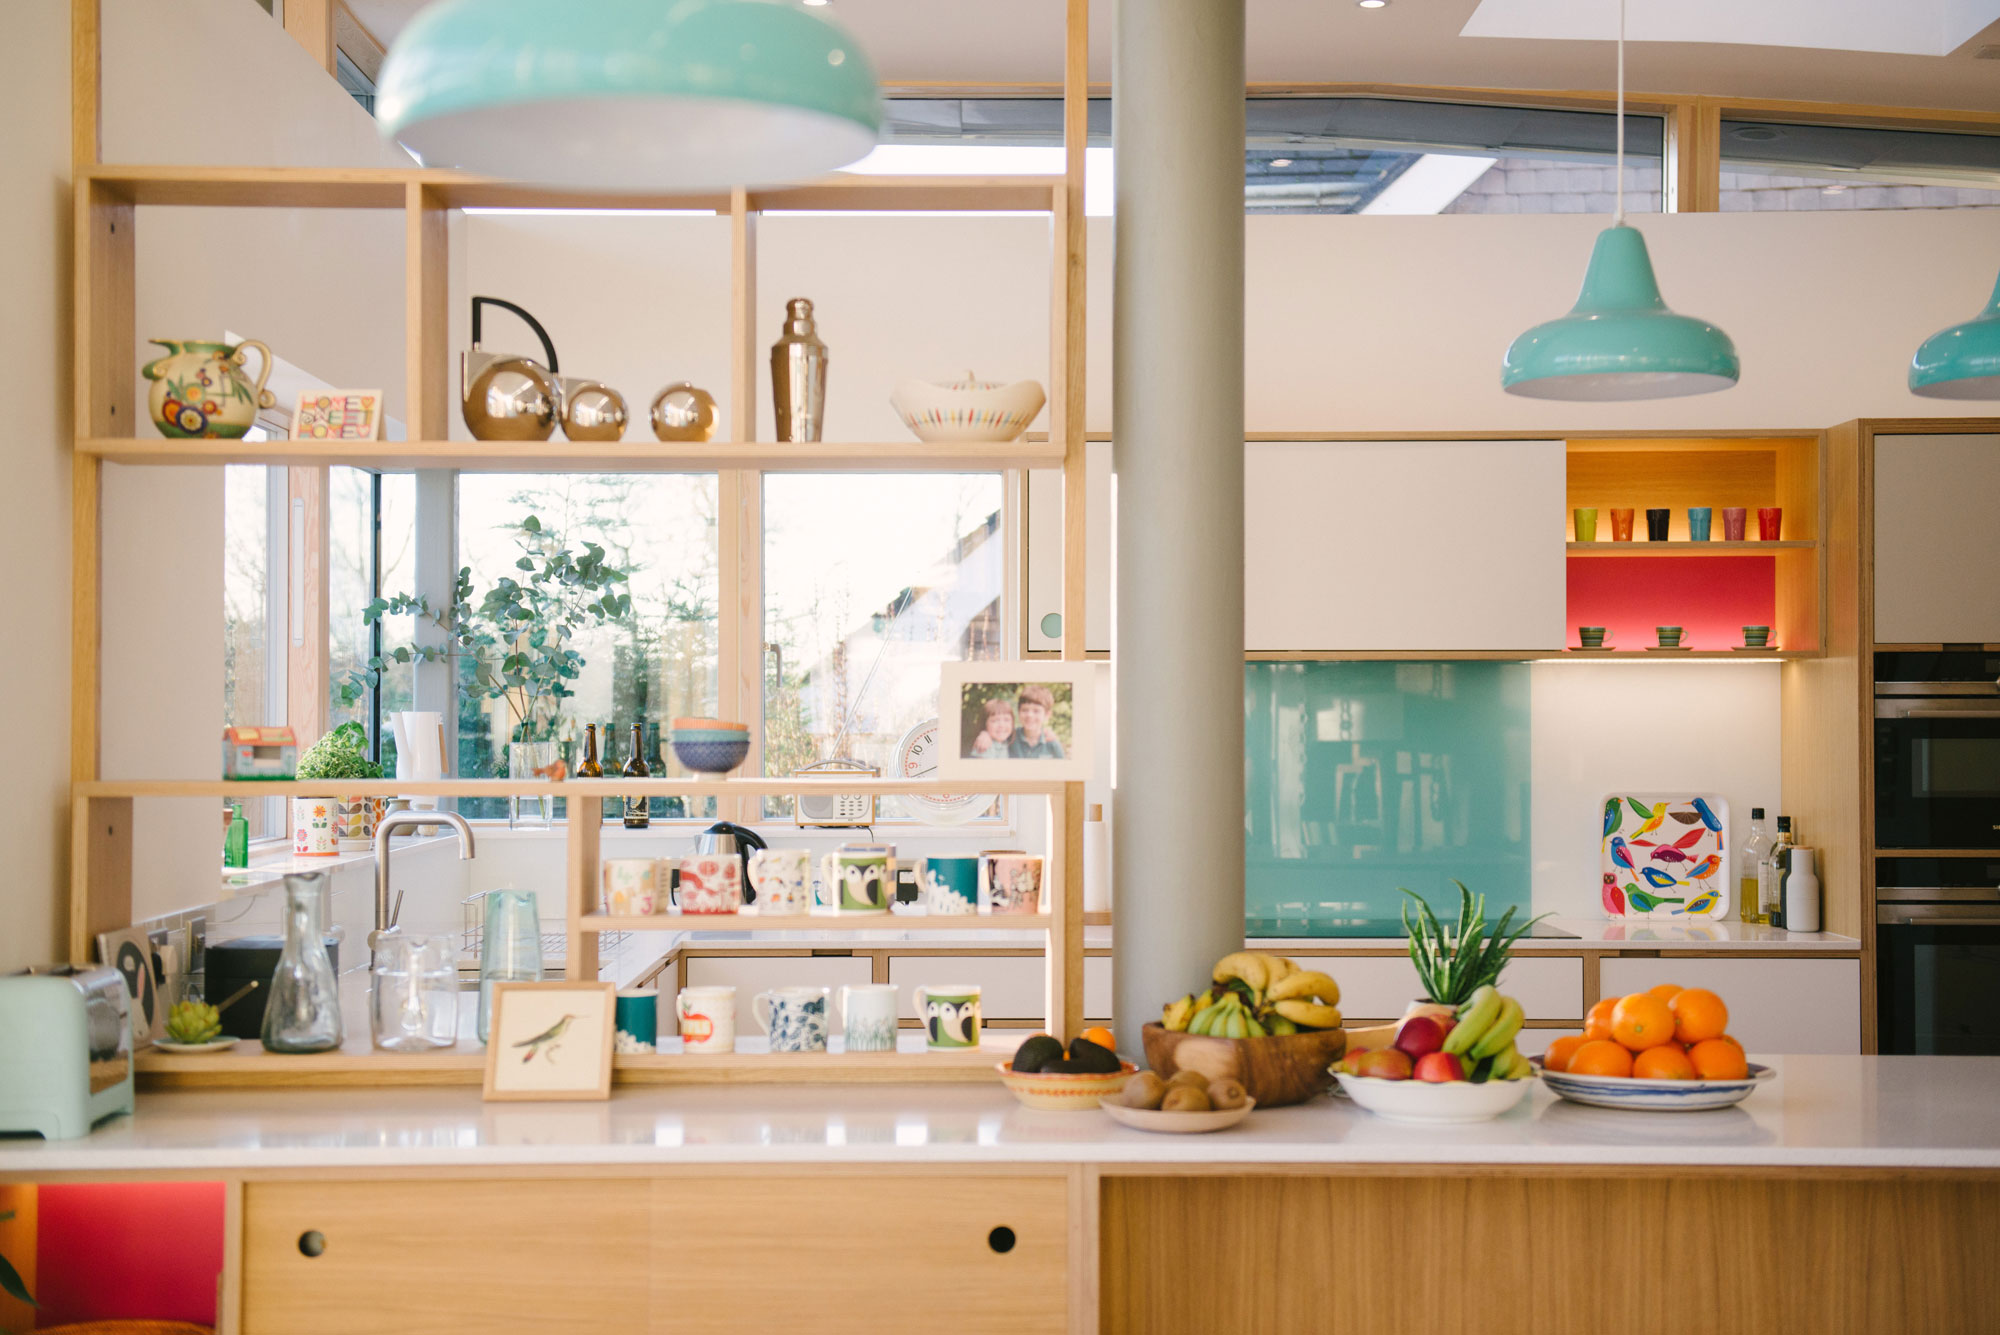 Open Shelving Defines Space Between Kitchen and Living Area